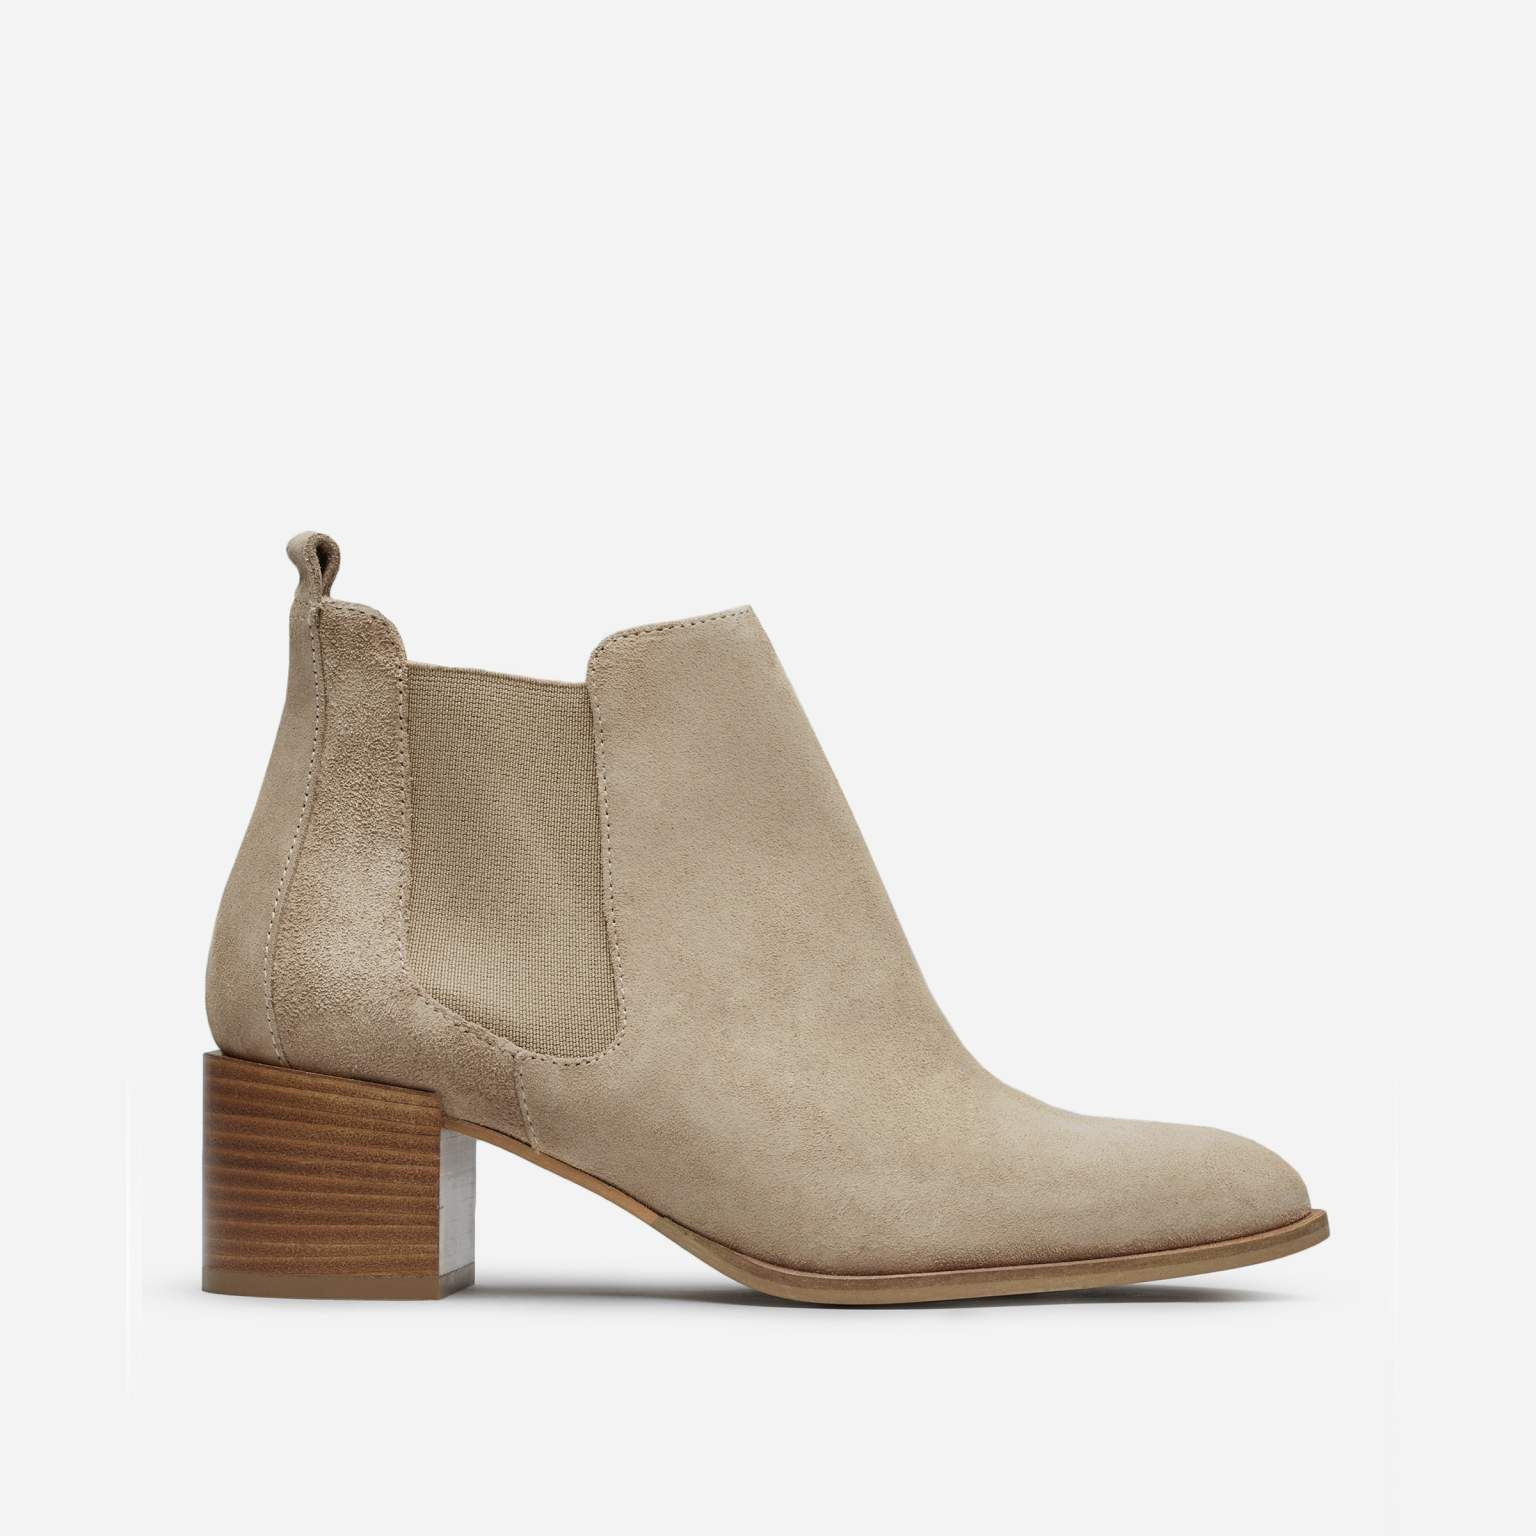 b4c83814791 Tory Burch  Hilary  Suede Chukka Bootie (Women) available at  Nordstrom